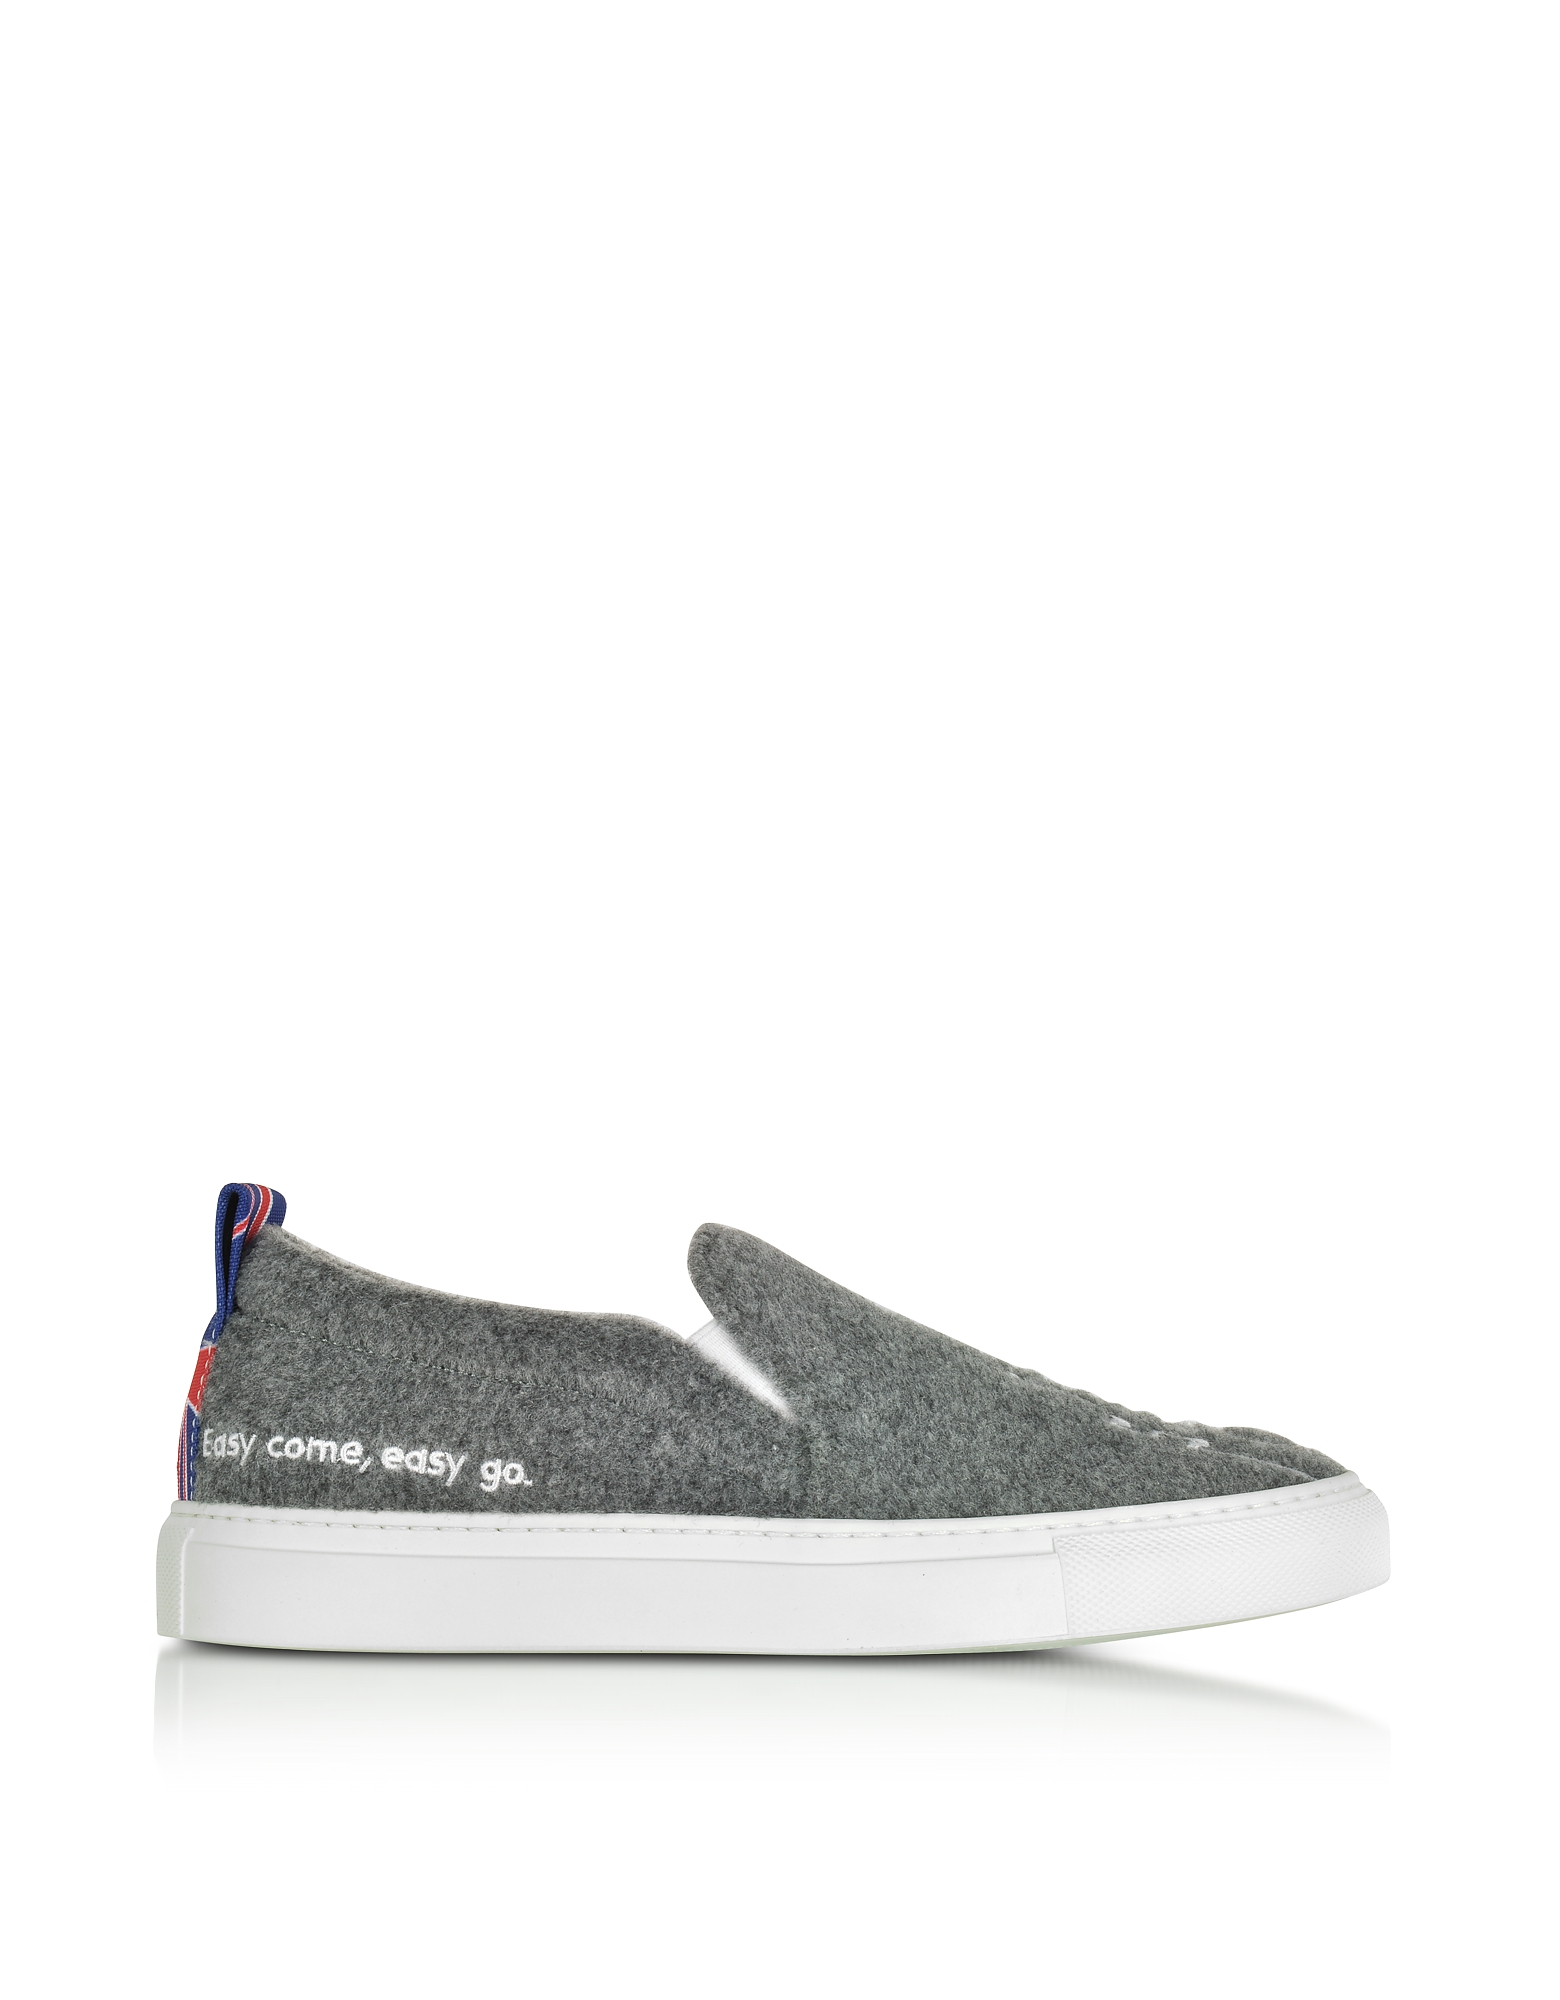 Joshua Sanders Shoes, Gray London Slip On Sneakers